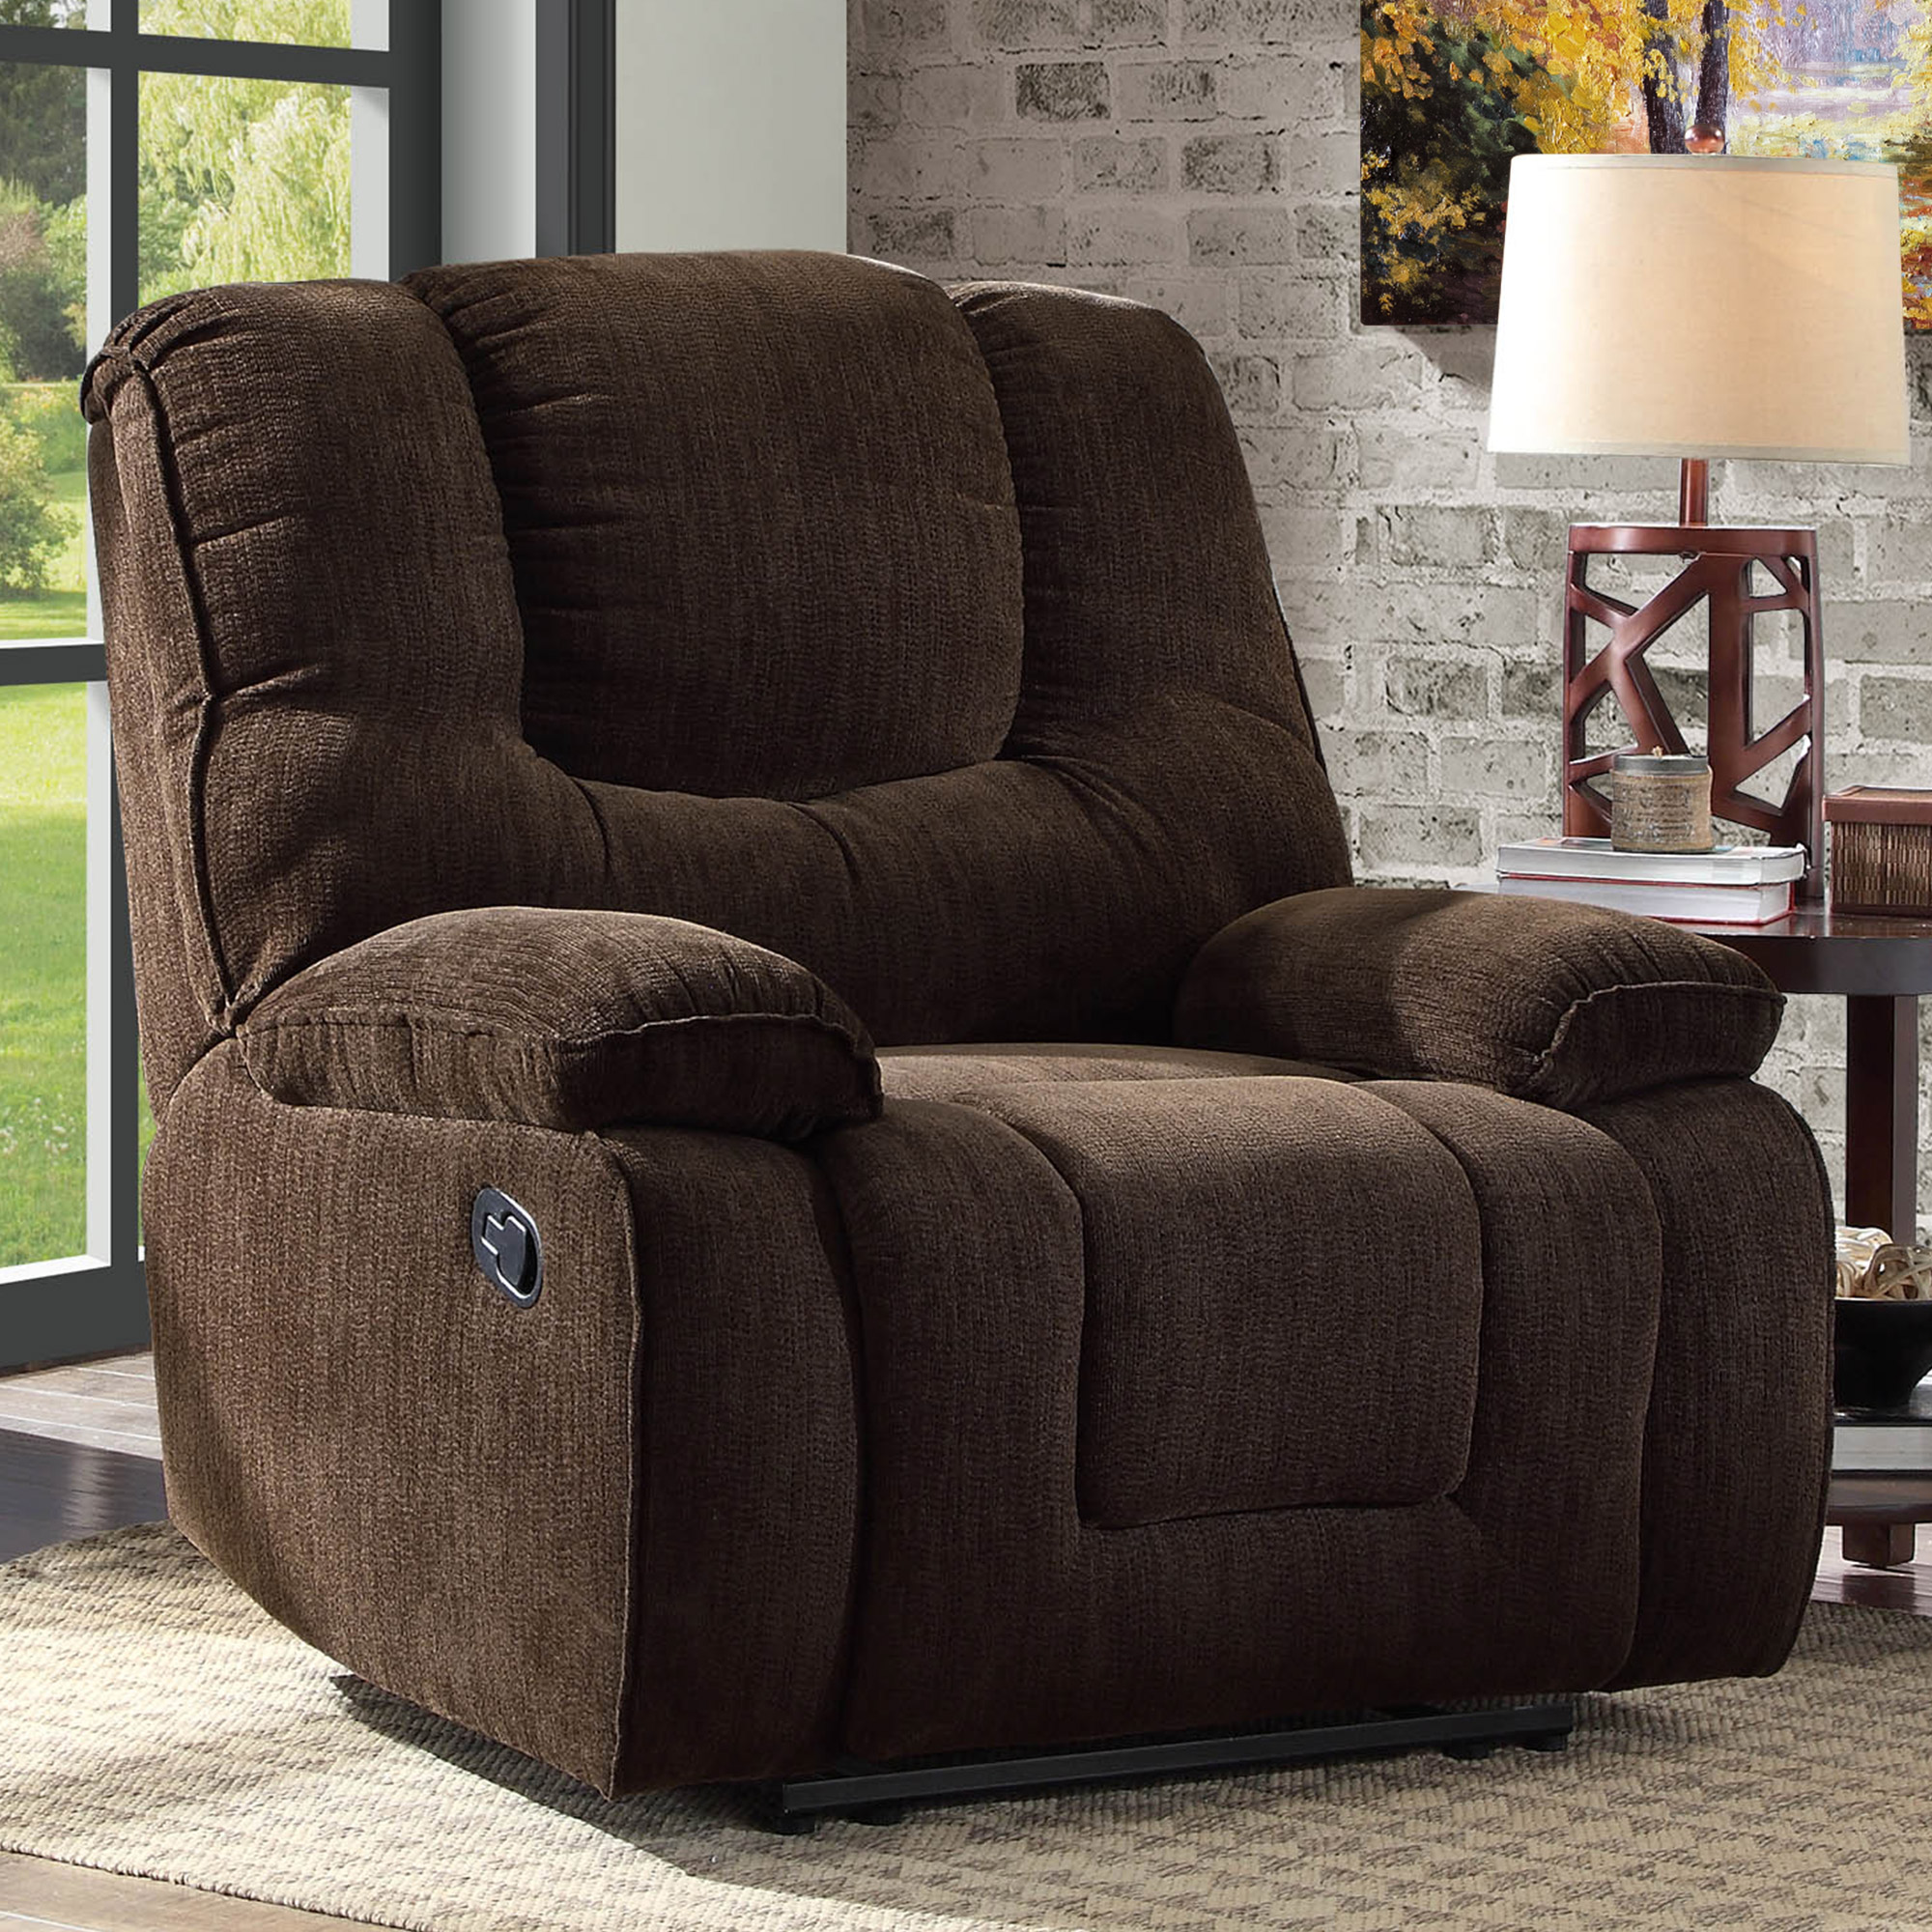 Product Image Better Homes and Gardens Big & Tall Recliner with In-Arm  Storage and USB,